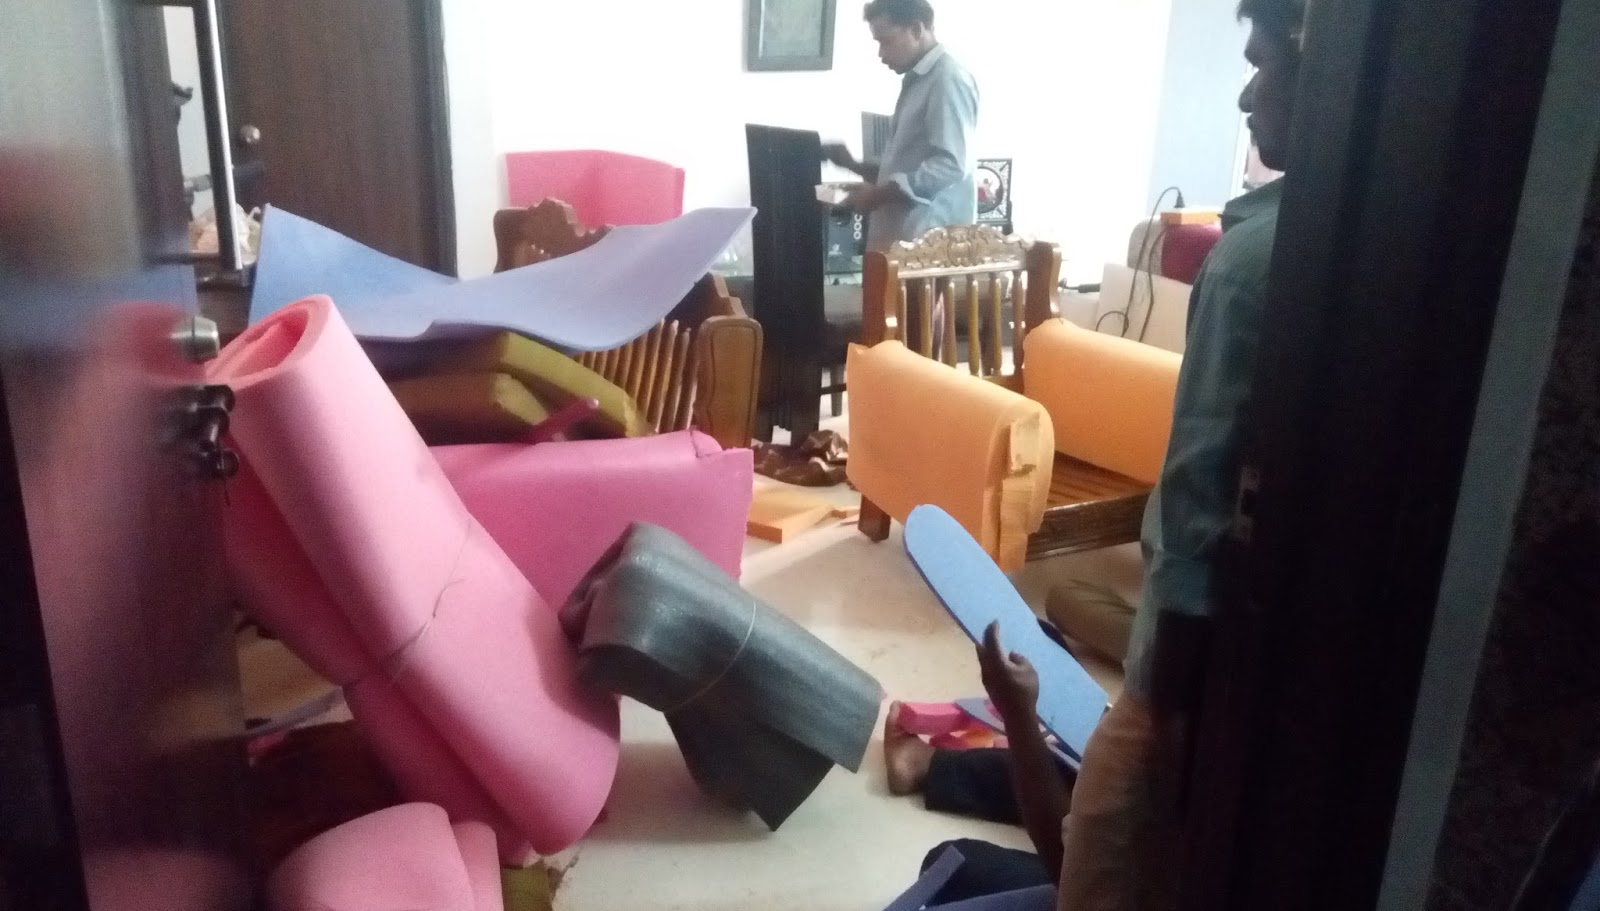 Sofa Cleaning Services In Chennai Lifestyle Solutions Convertible Bed Chair And Repair Anna Nagar